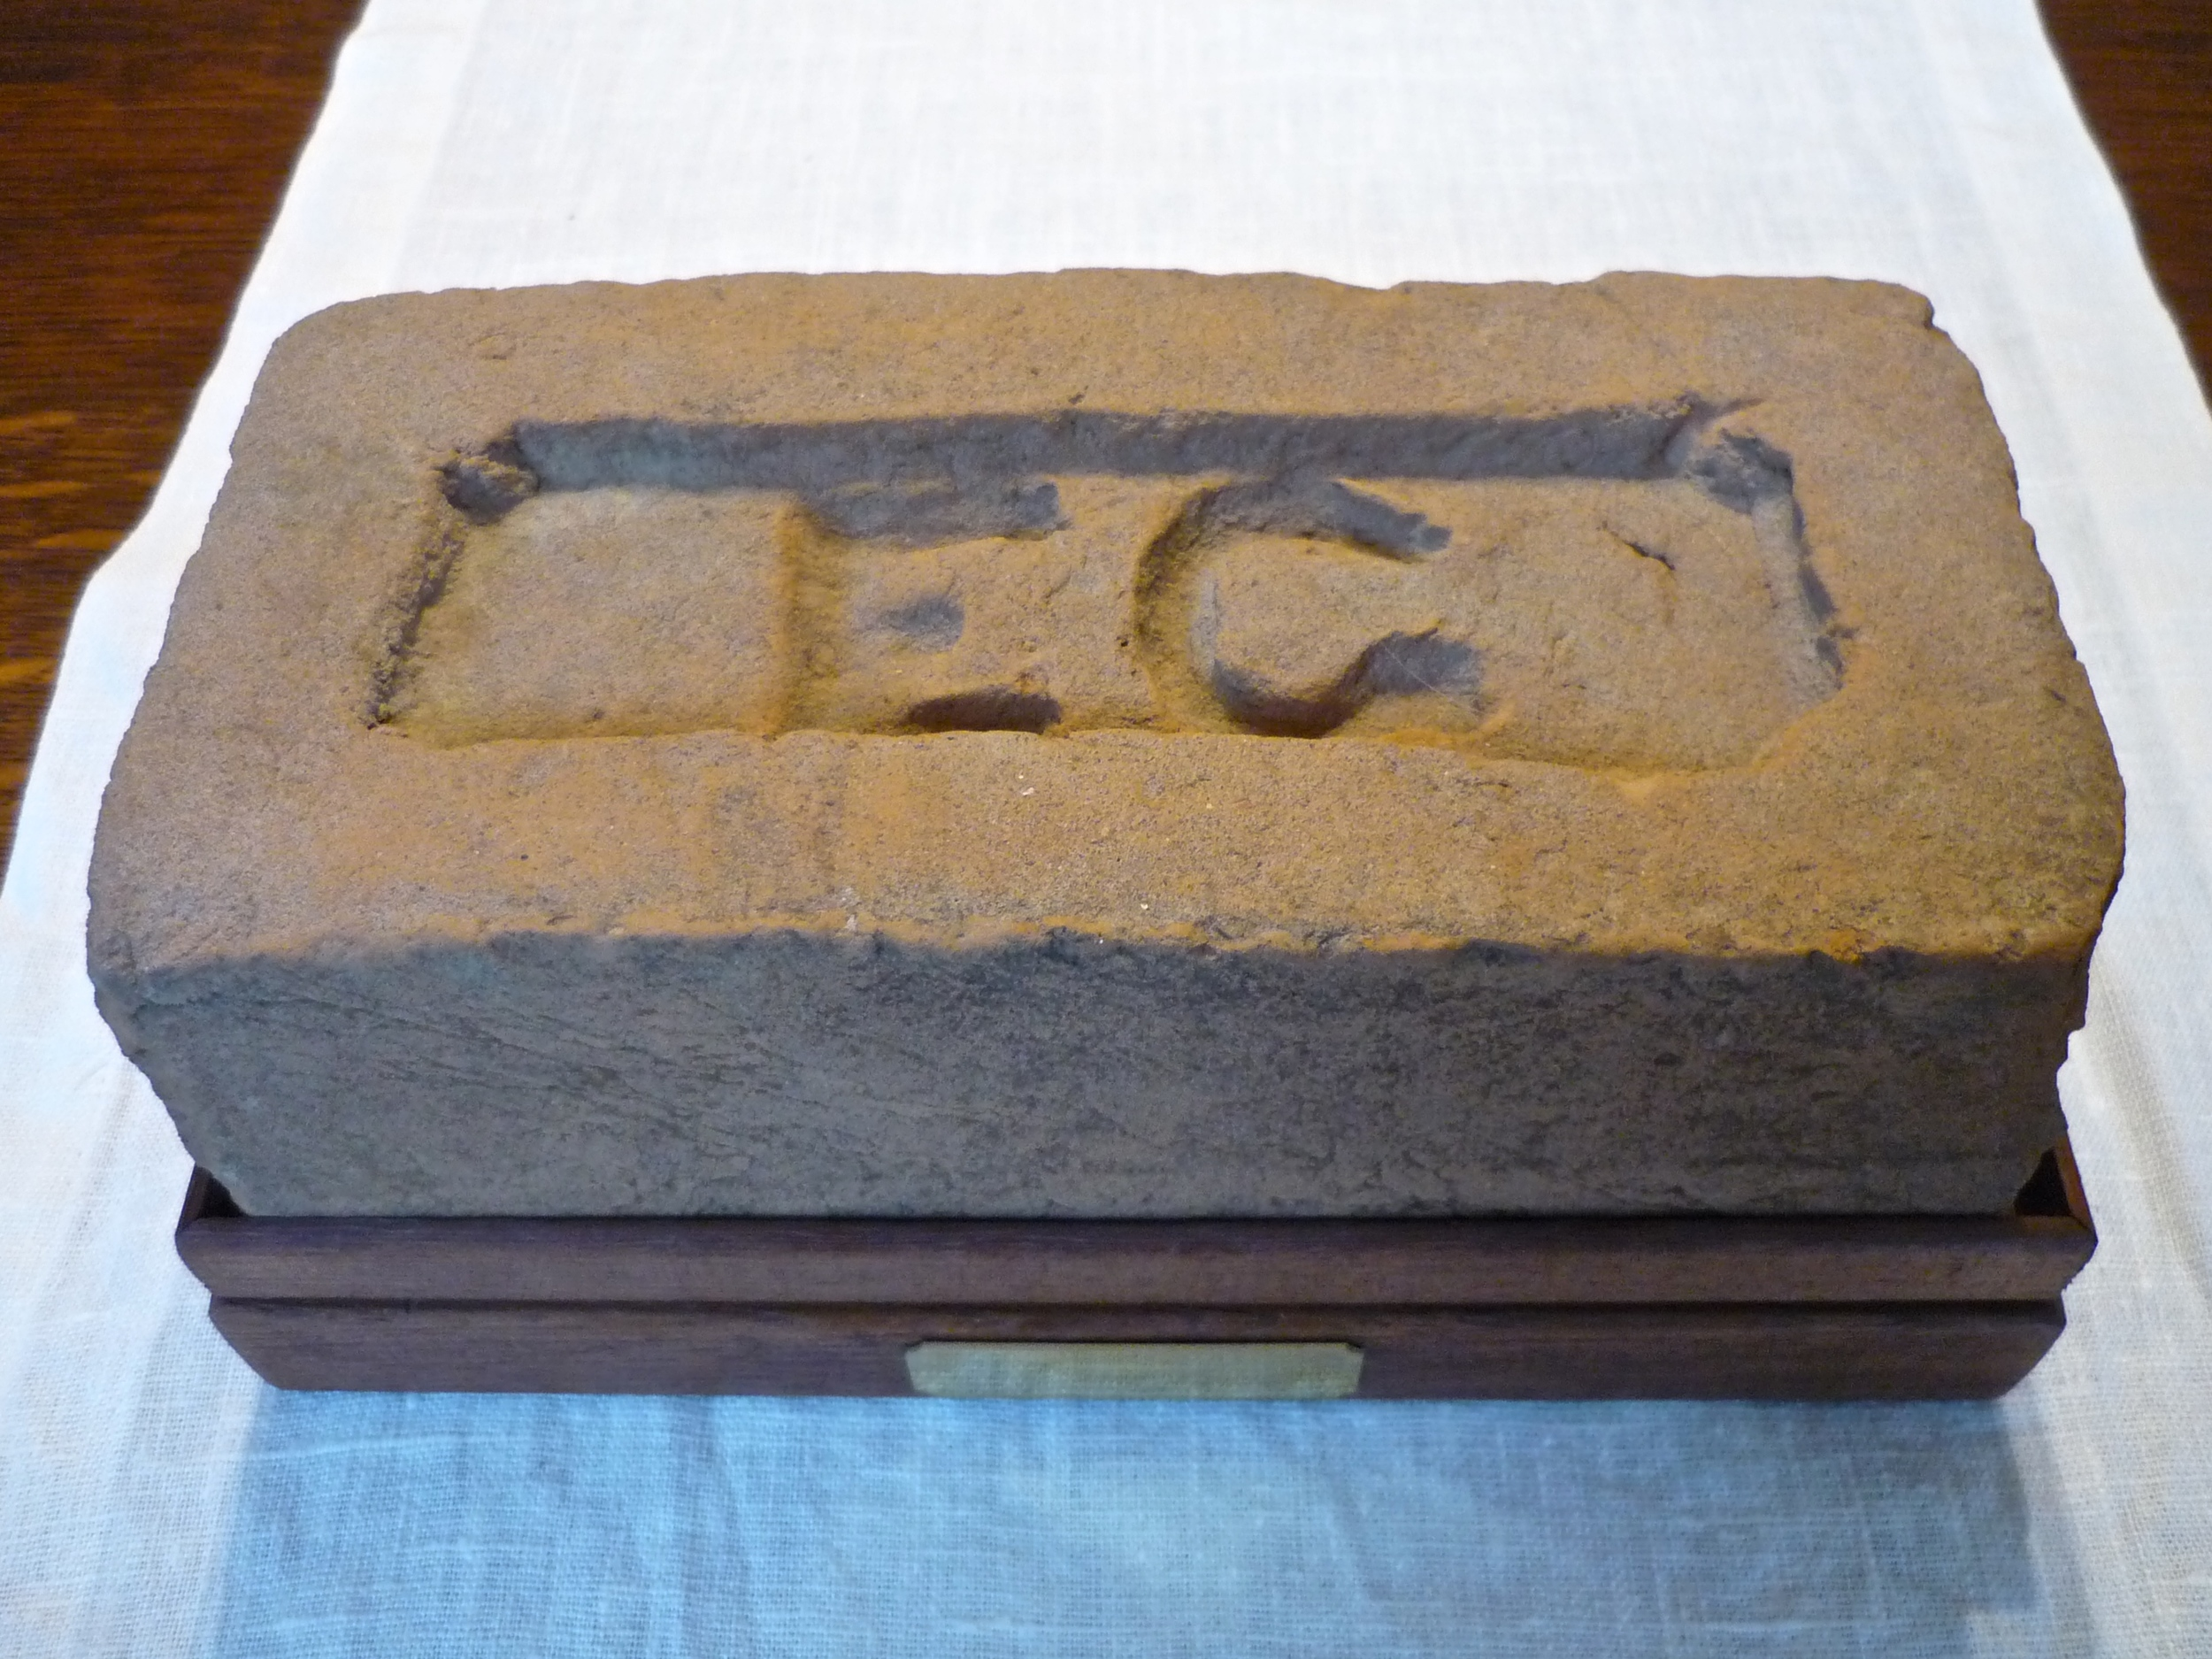 Brick made by Elijah Gadd